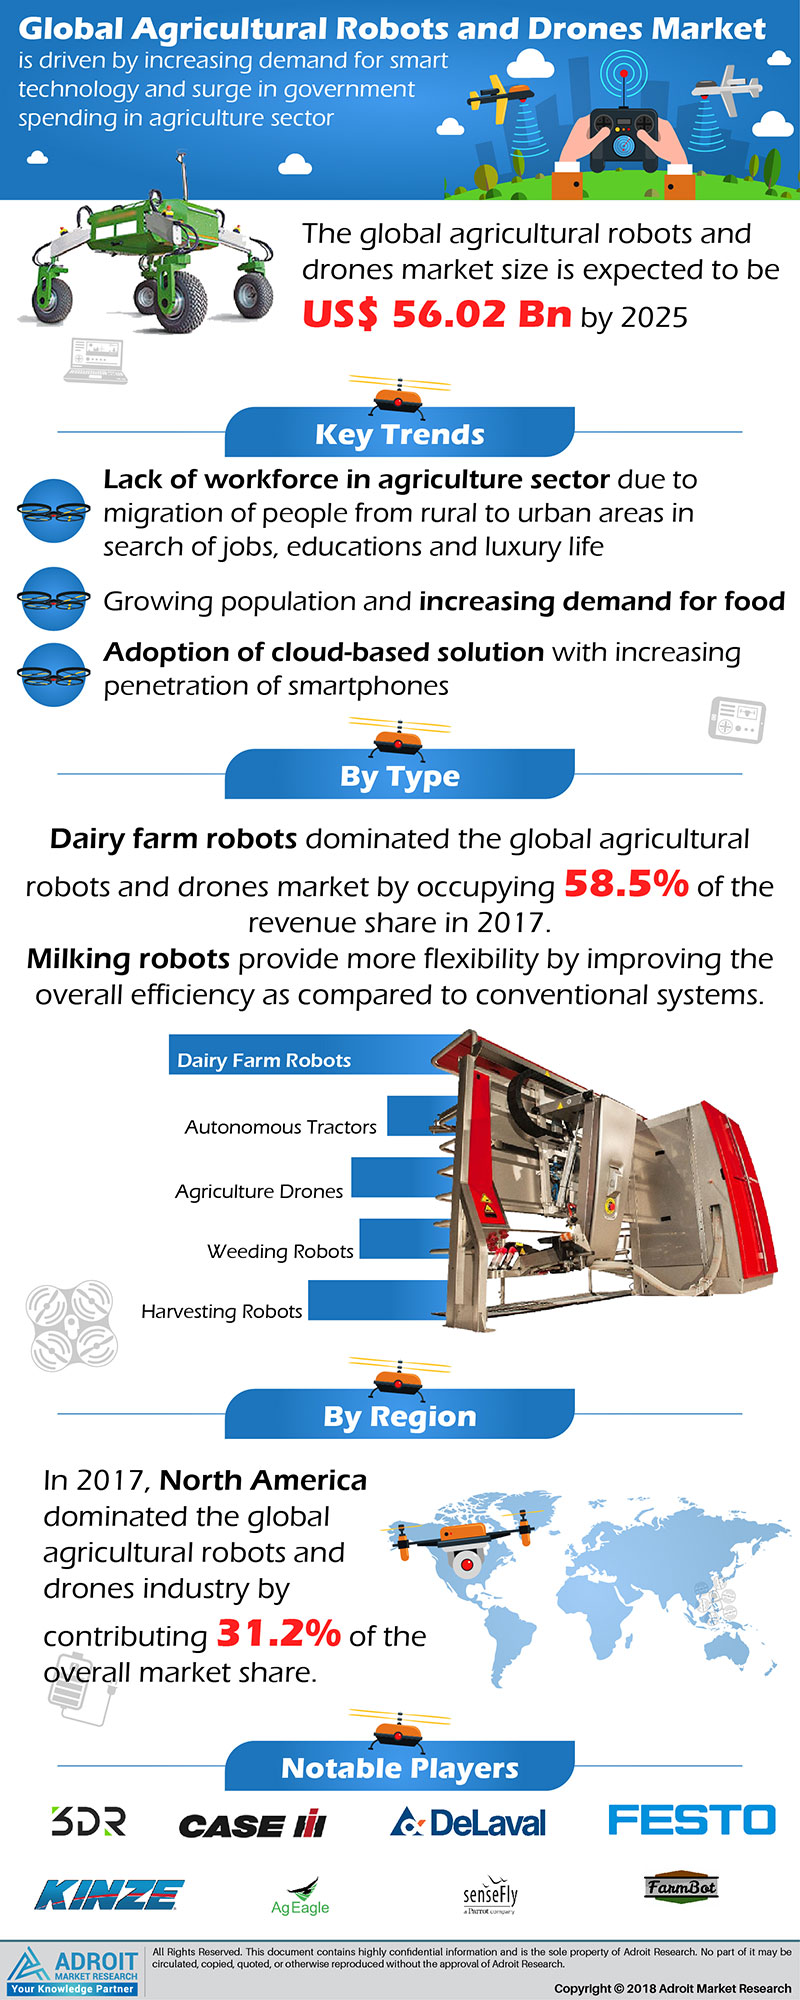 Agricultural Robots & Drones Market to worth USD 56.02 billion by 2025